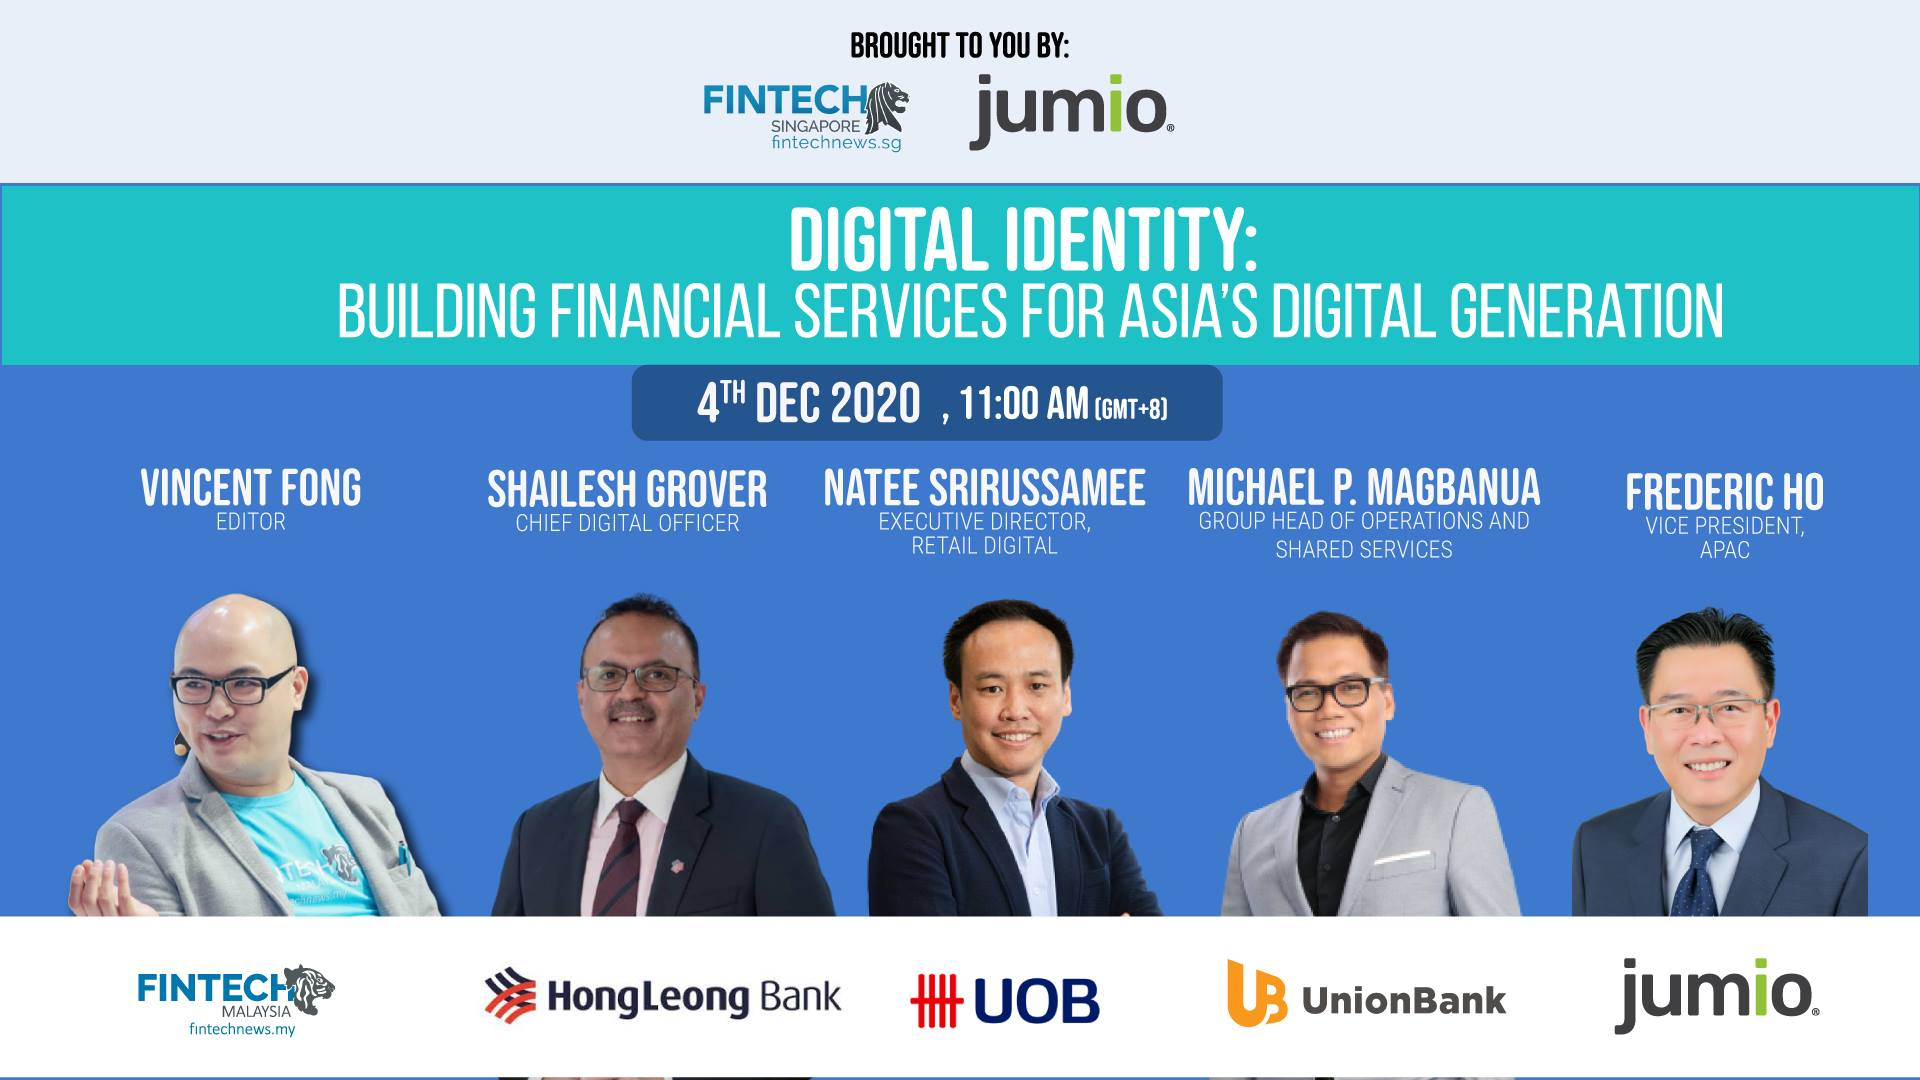 Digital Identity- Building Financial Services for Asia's Digital Generation